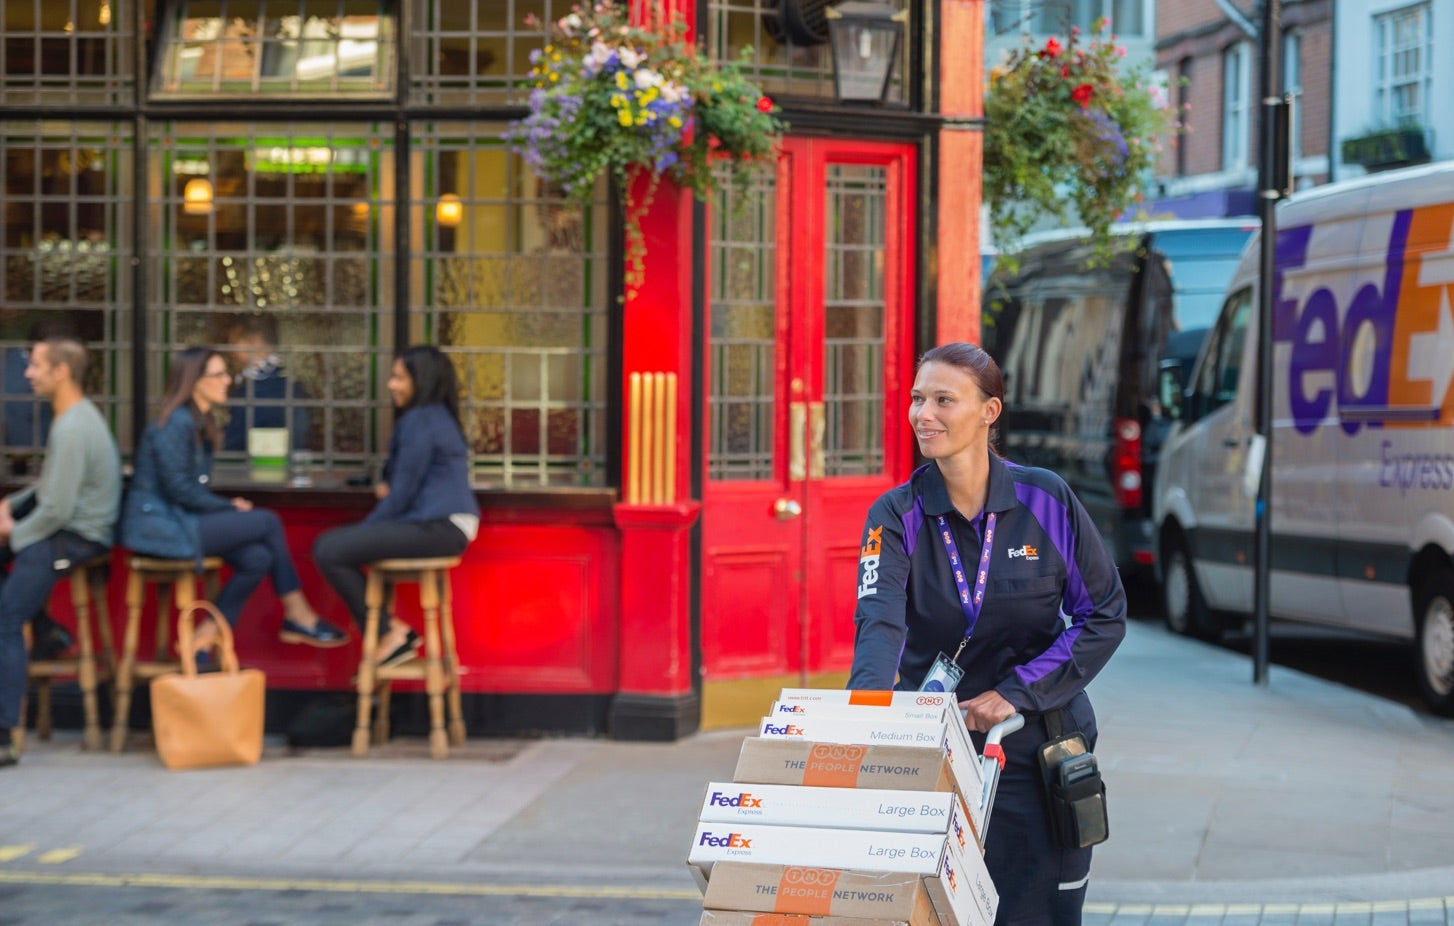 Female FedEx driver delivering packages in front of a restaurant with outdoor seating.